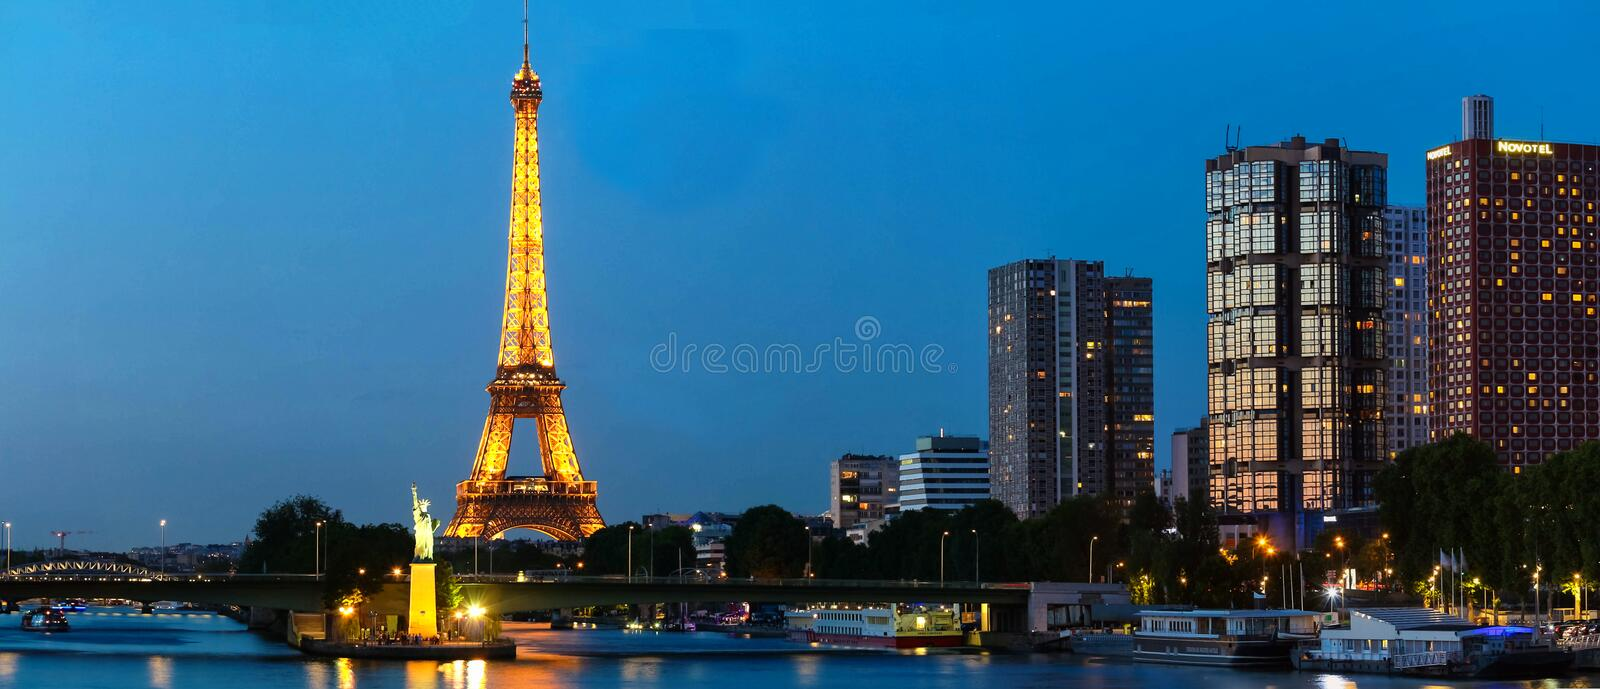 Panoramic Paris cityscape with Eiffel tower, quay de Grenelle at night, Paris, France. royalty free stock images